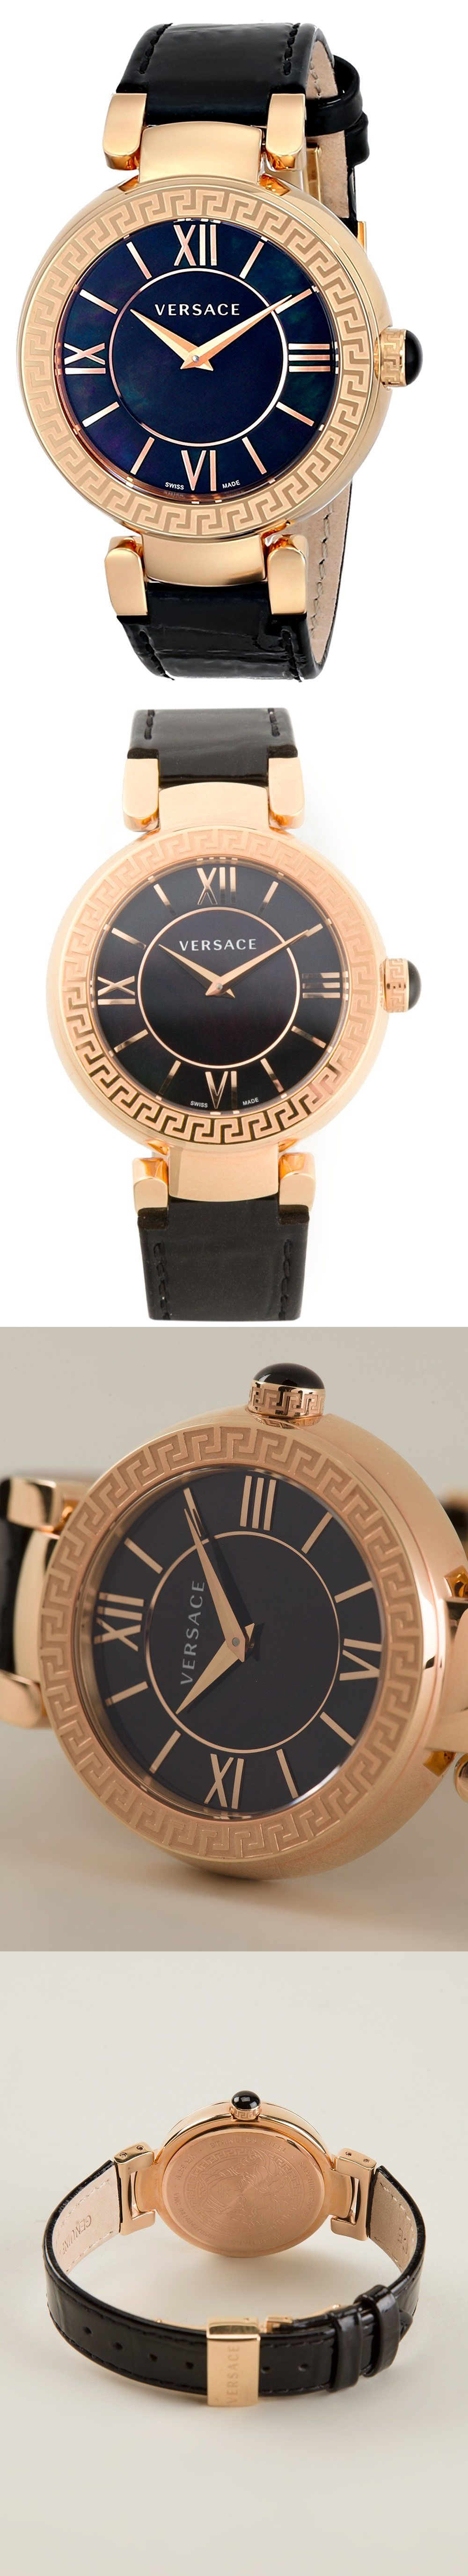 Other Pocket Watches 398: Versace Leda Womens Vnc040014 Gold Ip Steel Case Black Mop Dial Watch BUY IT NOW ONLY: $399.95